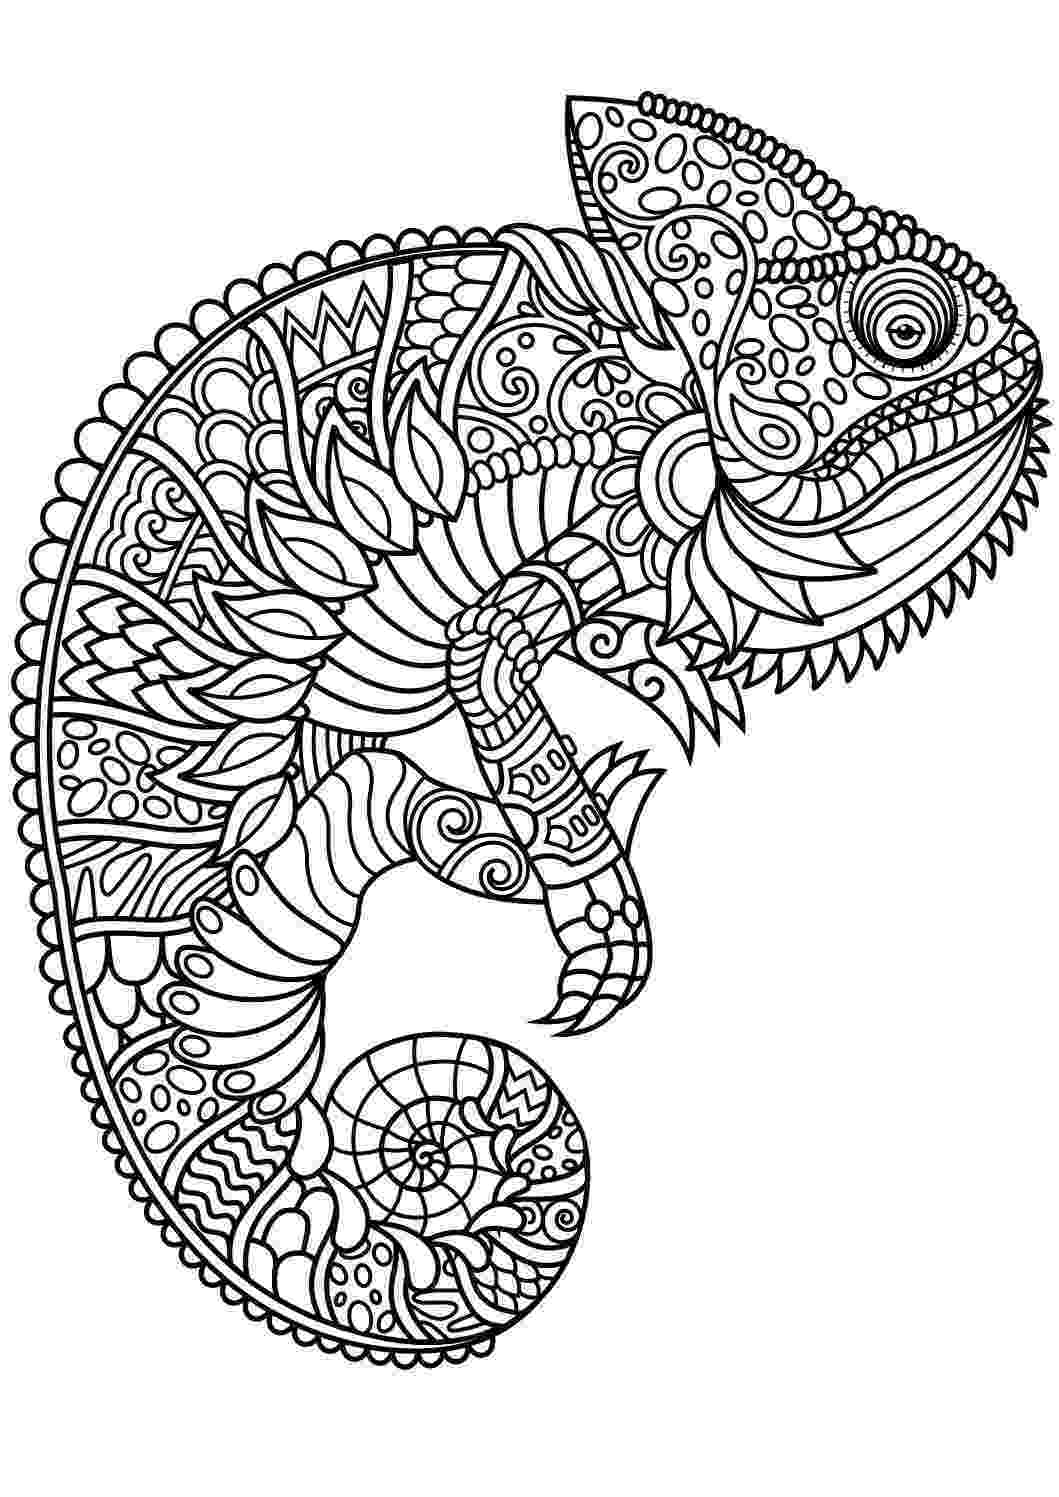 colouring pages for adults animals cute animal coloring pages for adults awesome sloth in pages animals adults for colouring